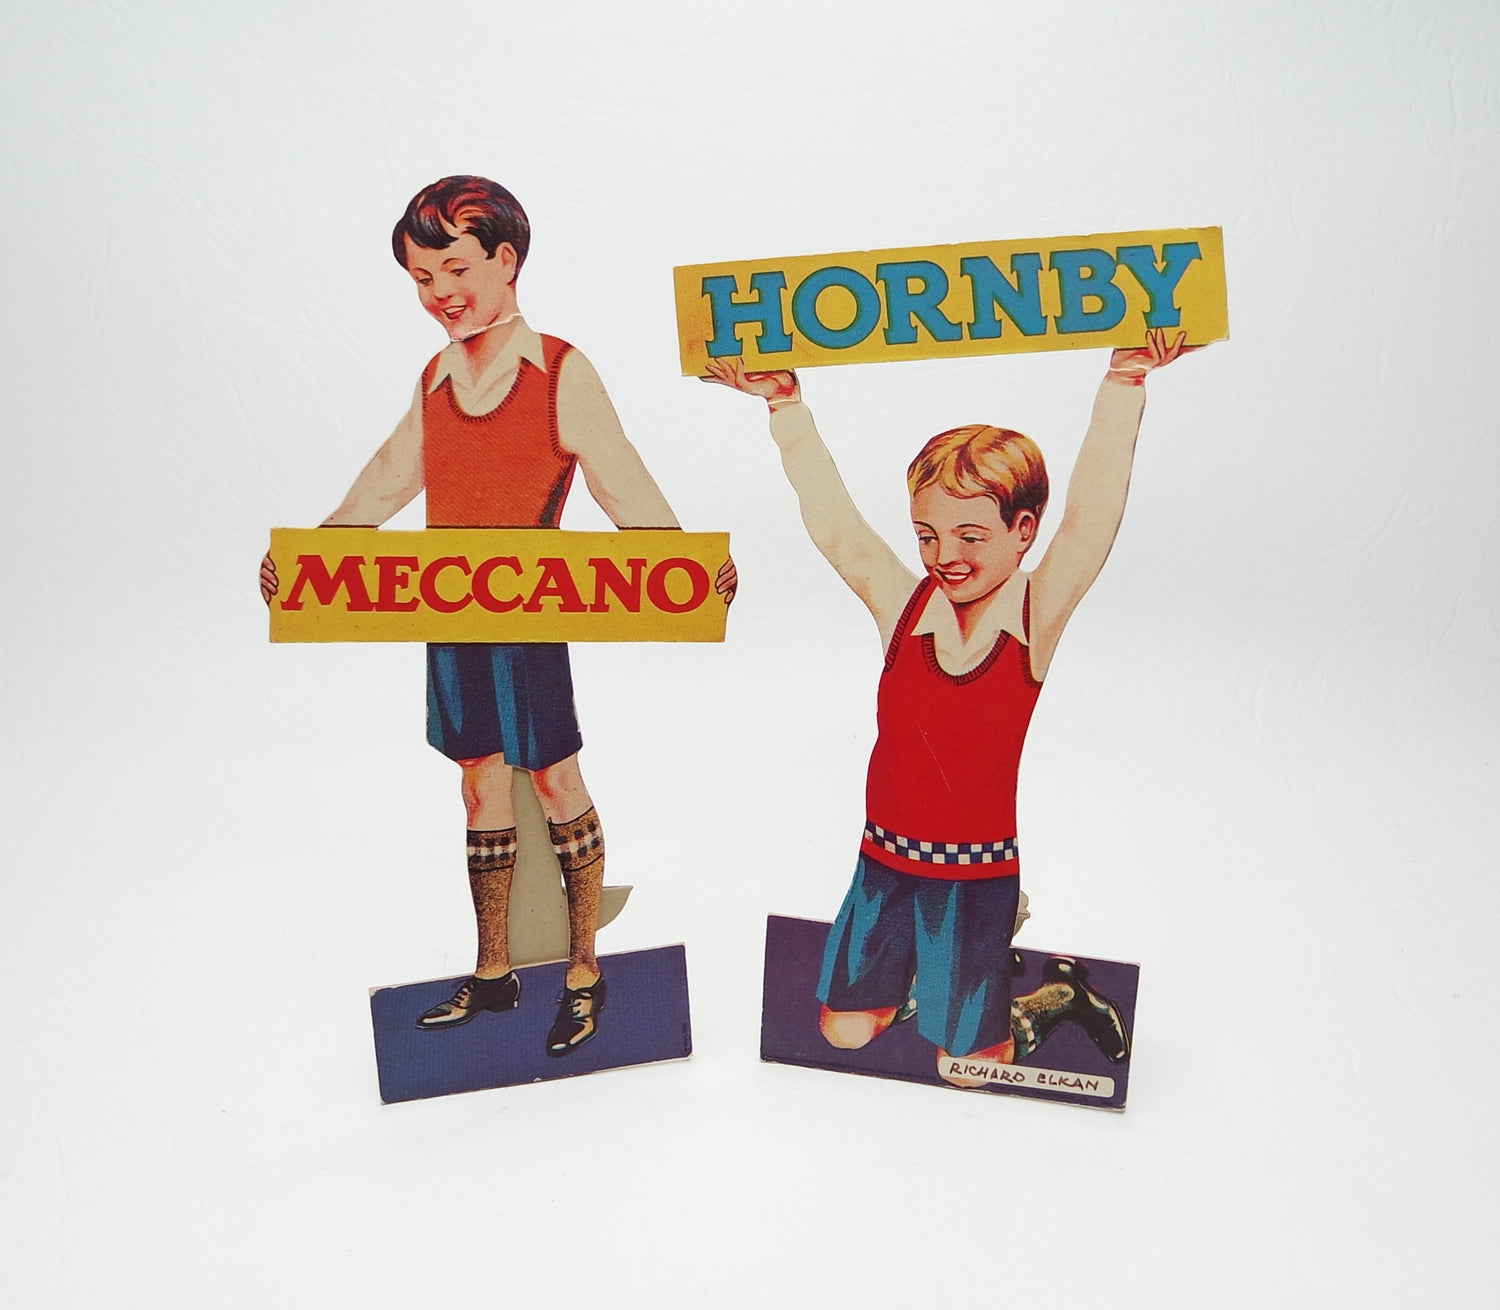 Child Meccano & Hornby Shop Display Advertisements